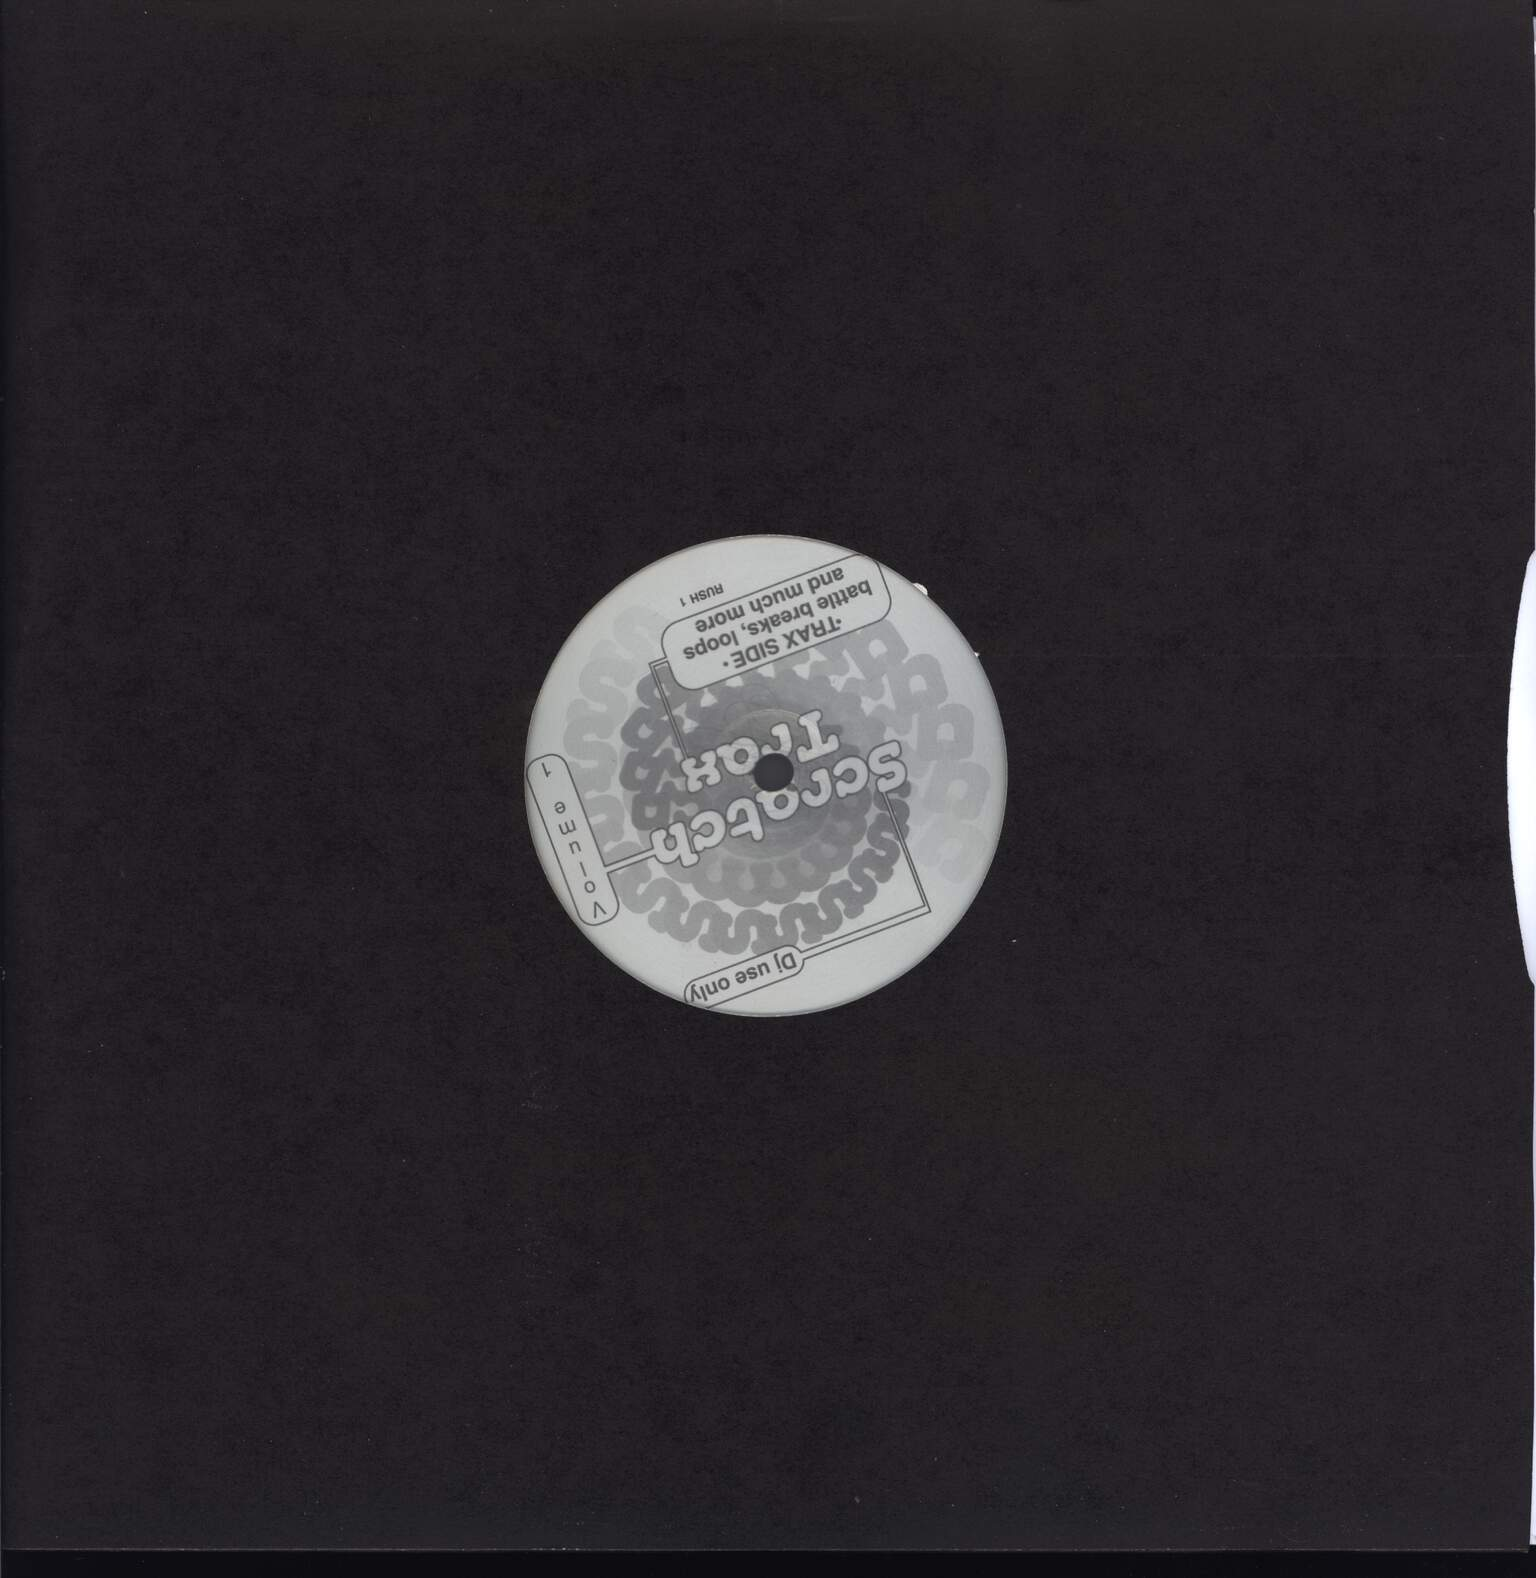 "Unknown Artist: Scratch Trax Vol 1, 12"" Maxi Single (Vinyl)"